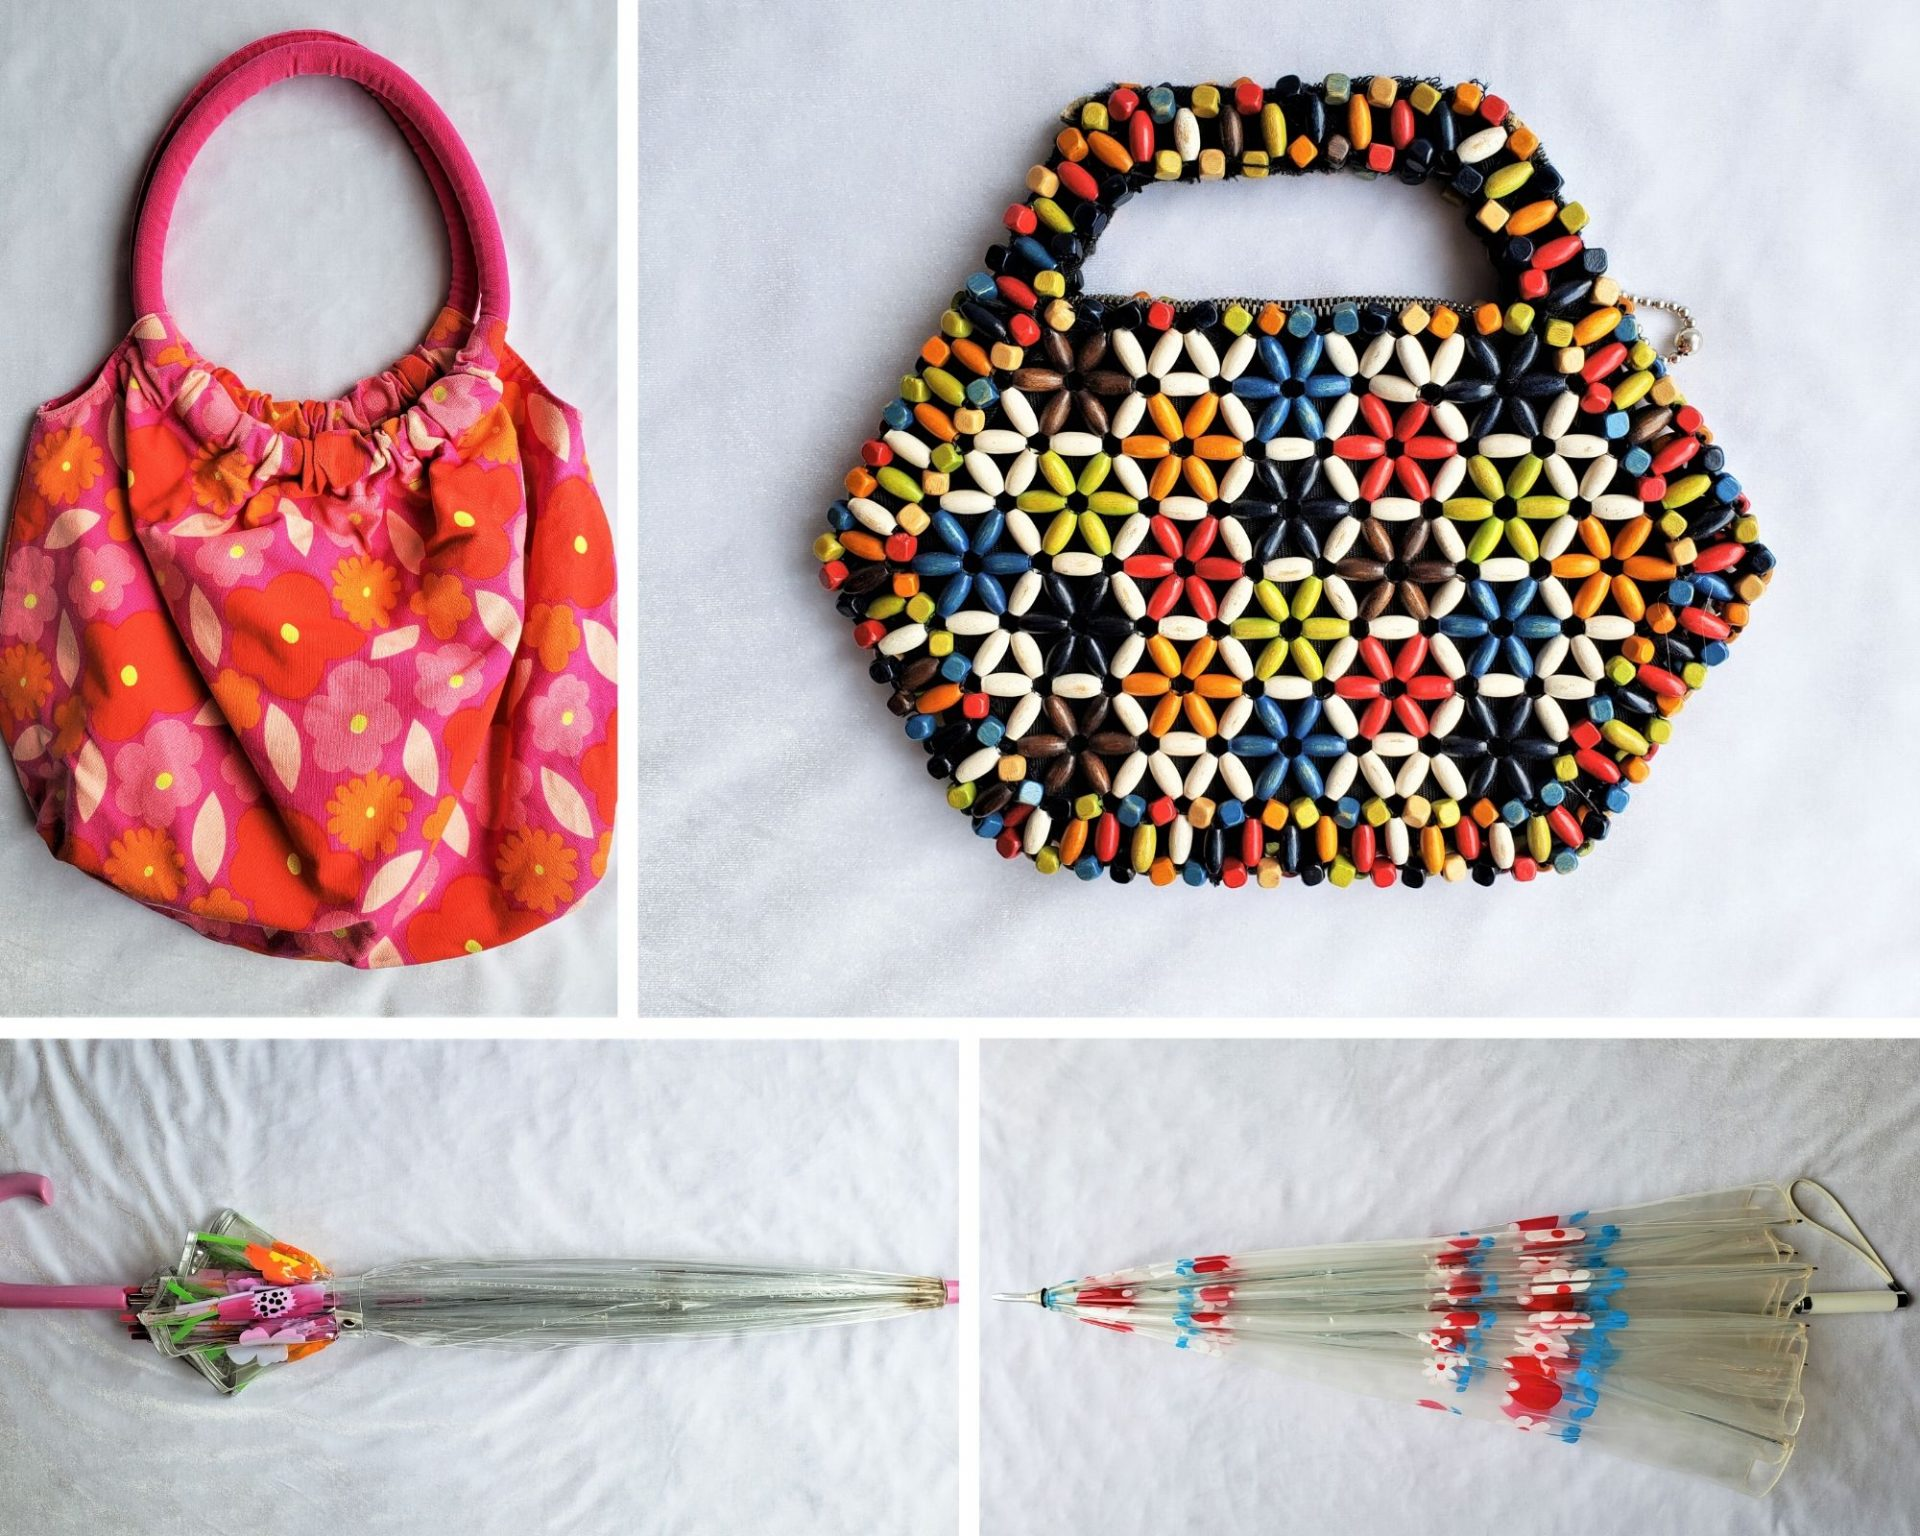 1960s Purse and Umbrella Collage